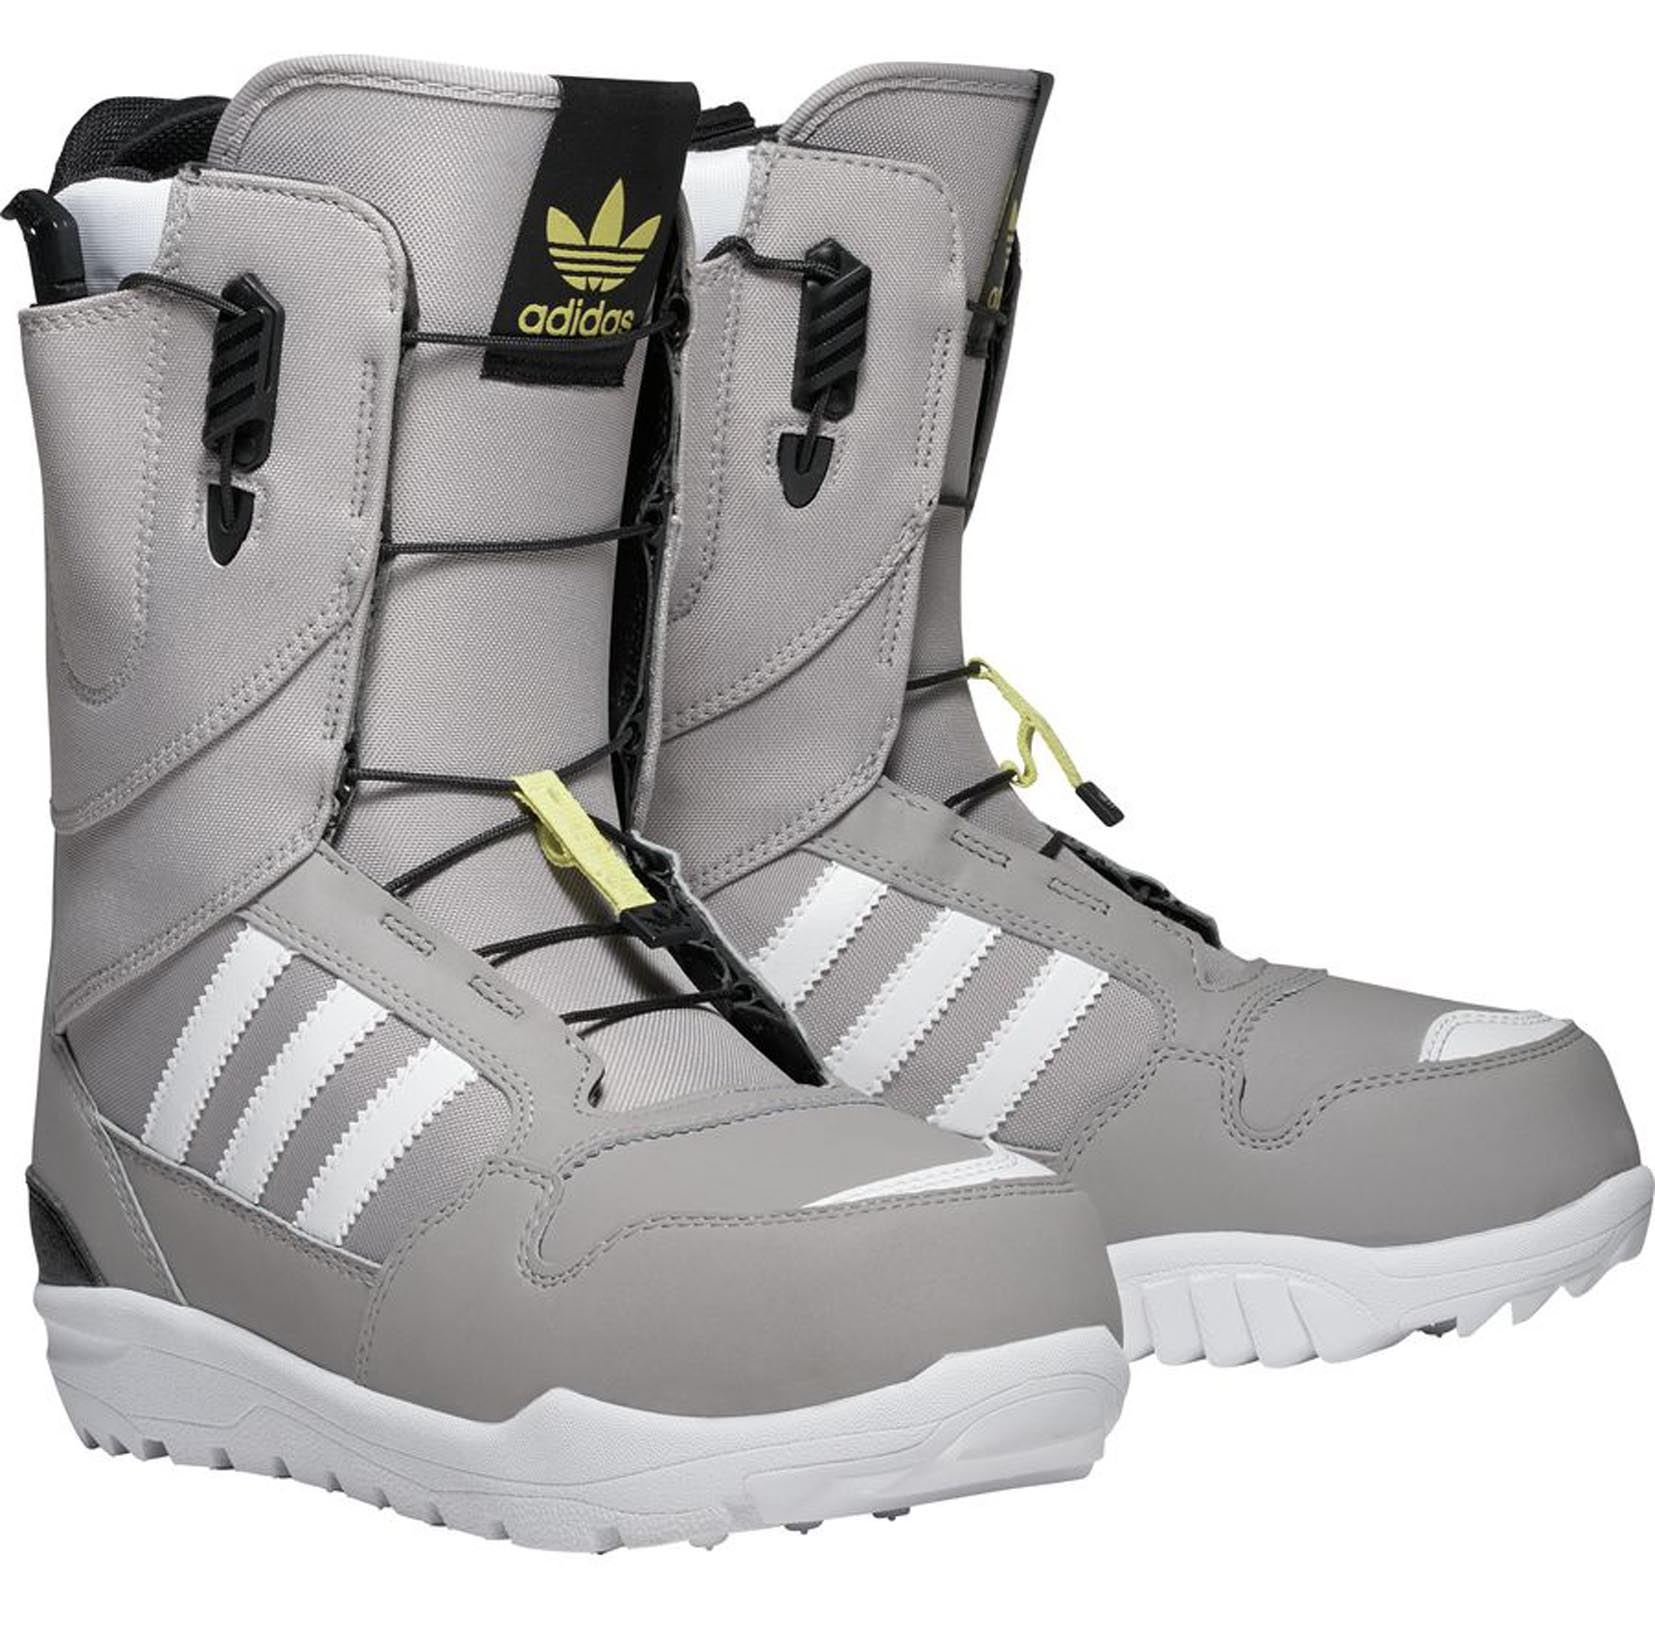 Adidas ZX 500 2015 2017 Snowboard Boot Review